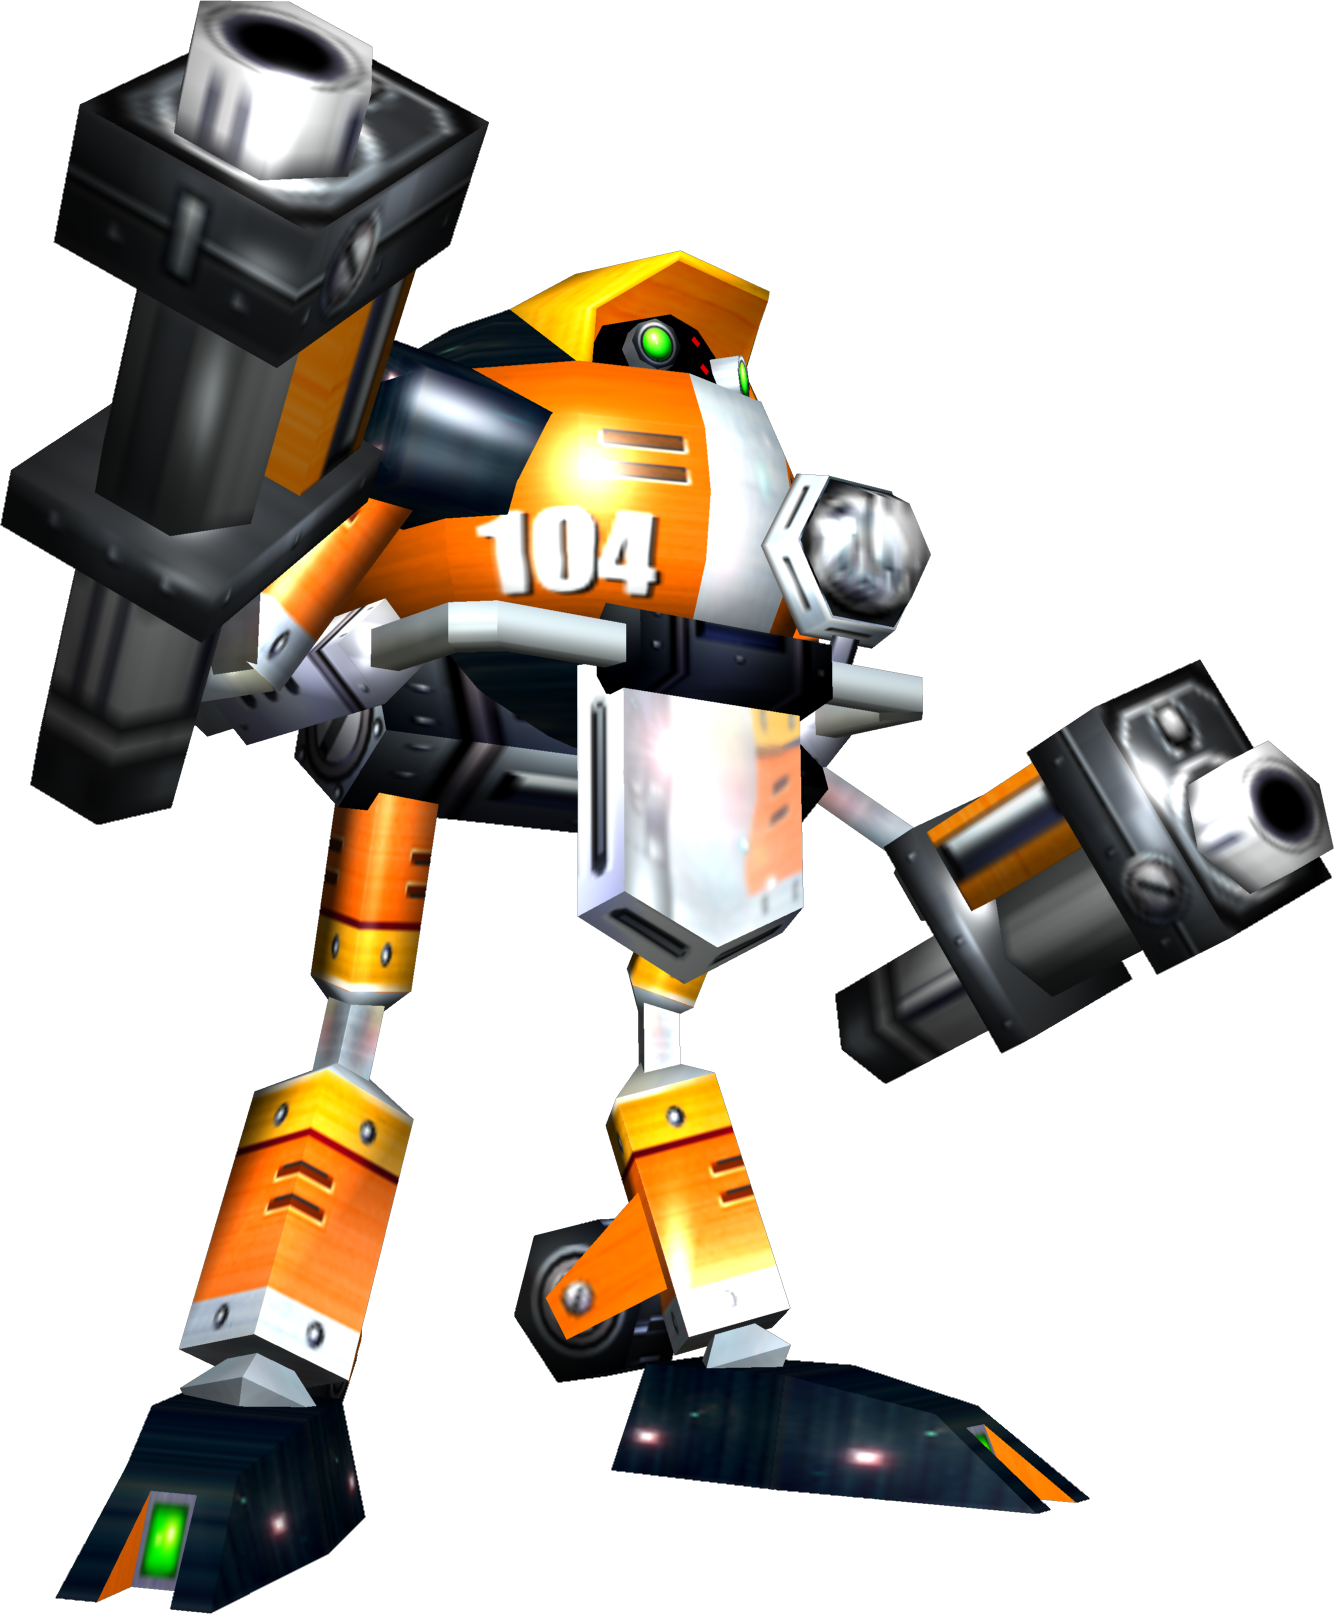 E-104 Epsilon - Sonic News Network, the Sonic Wiki